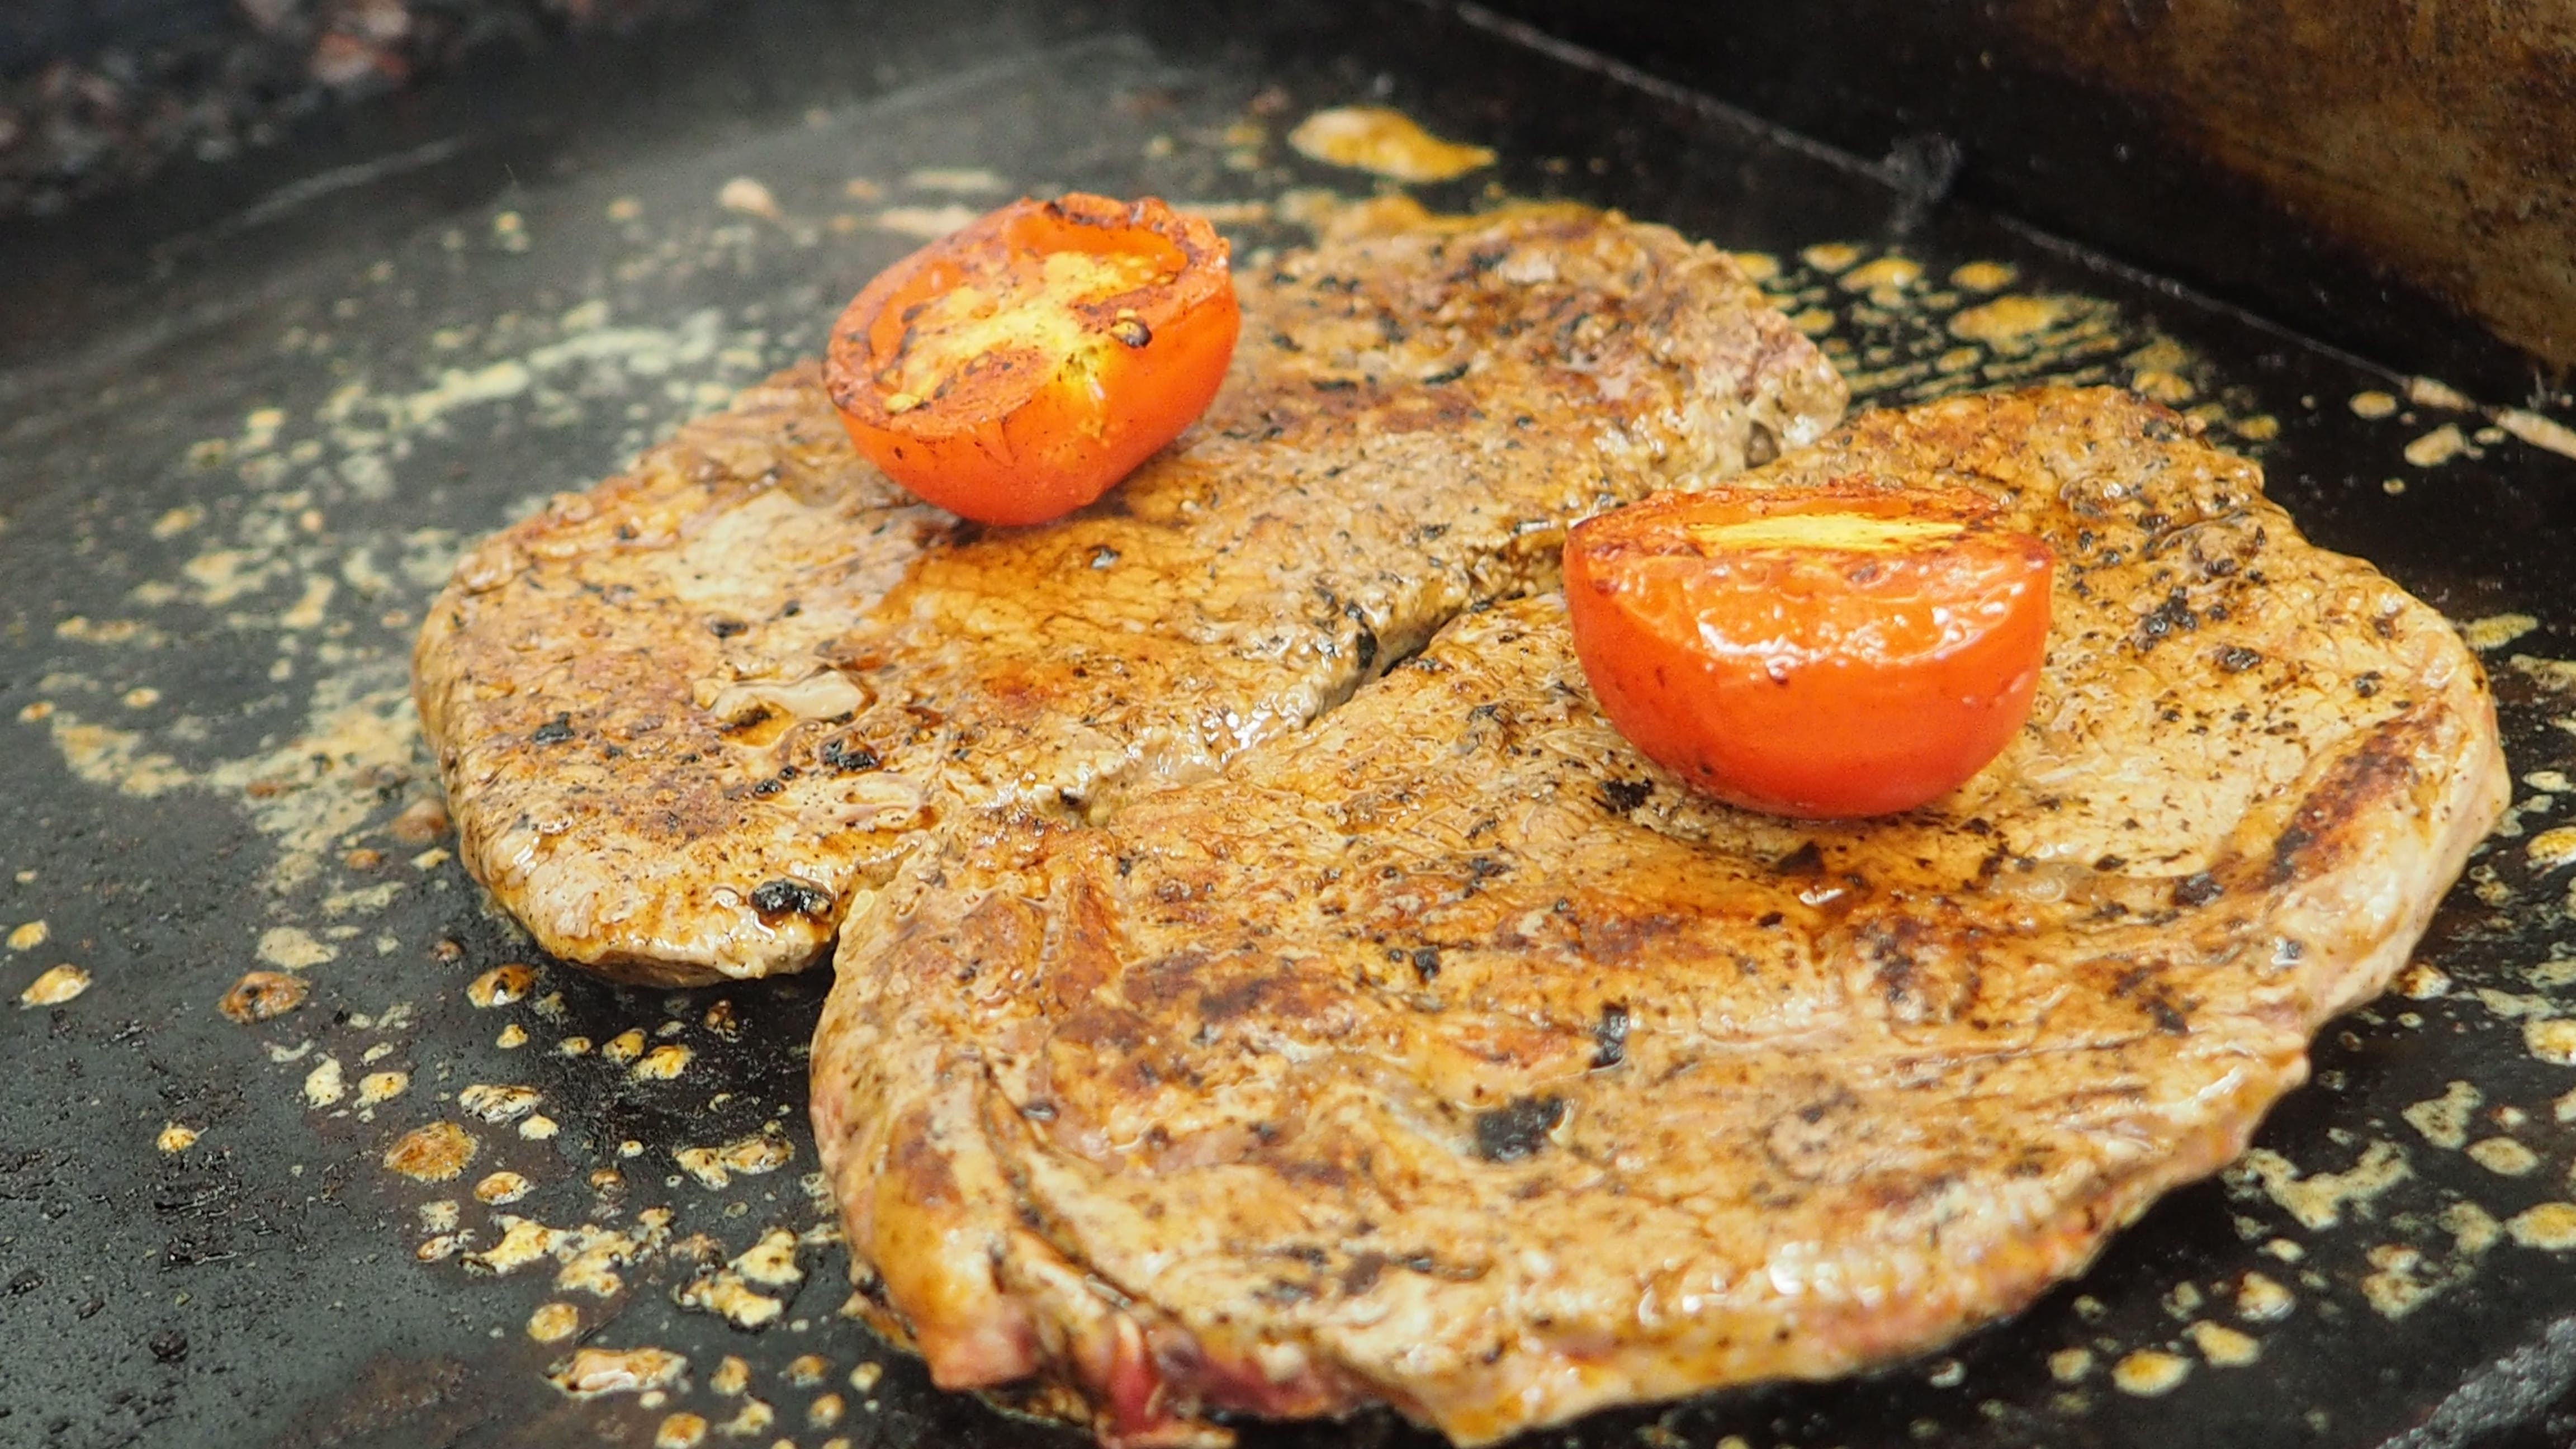 Free stock photo of cooking steak, steak, steak and tomato, steak being cooked